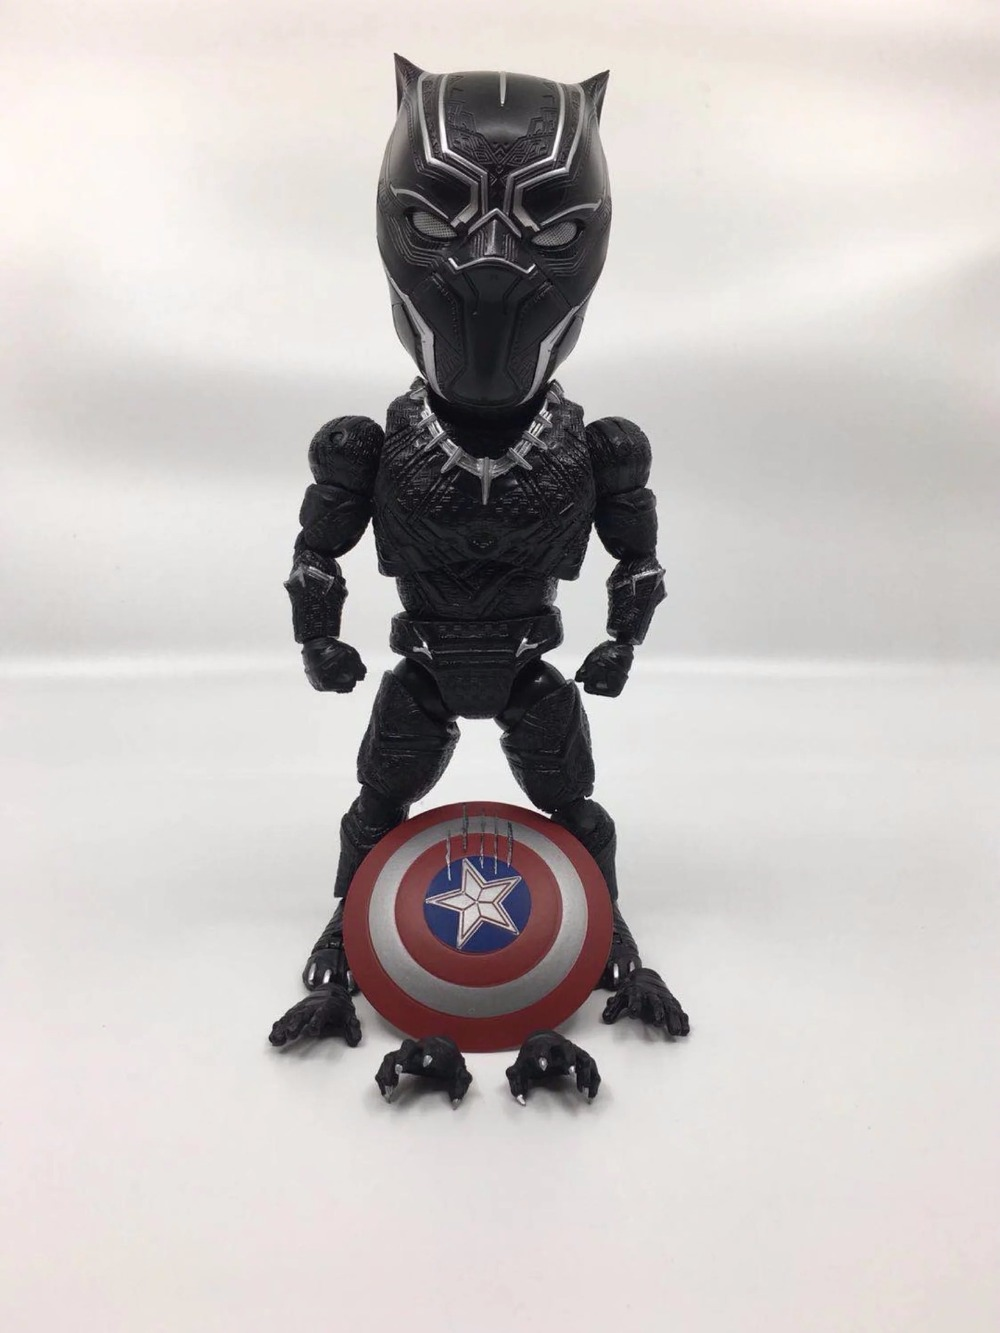 Egg Attack Super Heros Captain America Civil War Black Panther PVC Action Figures Collectible Model Anime Kids Toys Doll 18CM 1 6 scale figure captain america civil war or avengers ii scarlet witch 12 action figure doll collectible model plastic toy